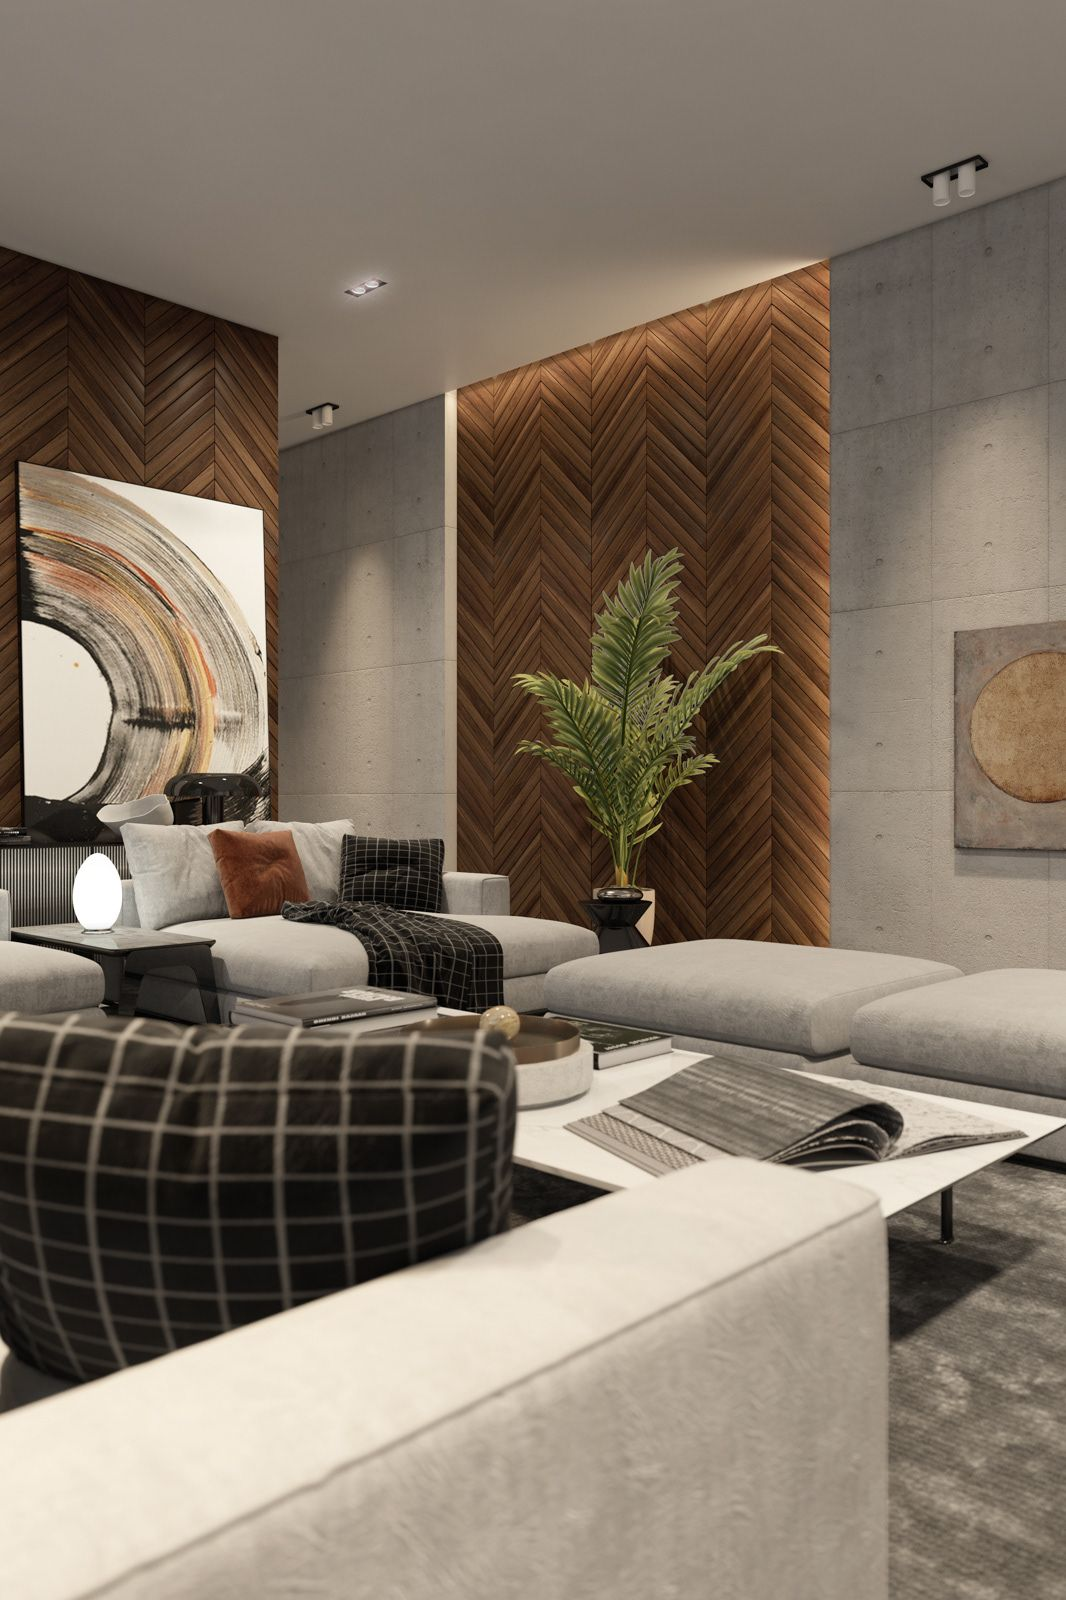 Living Room Walls Wood Panels: French Fir Wooden Wall Panels In Interior On Behance